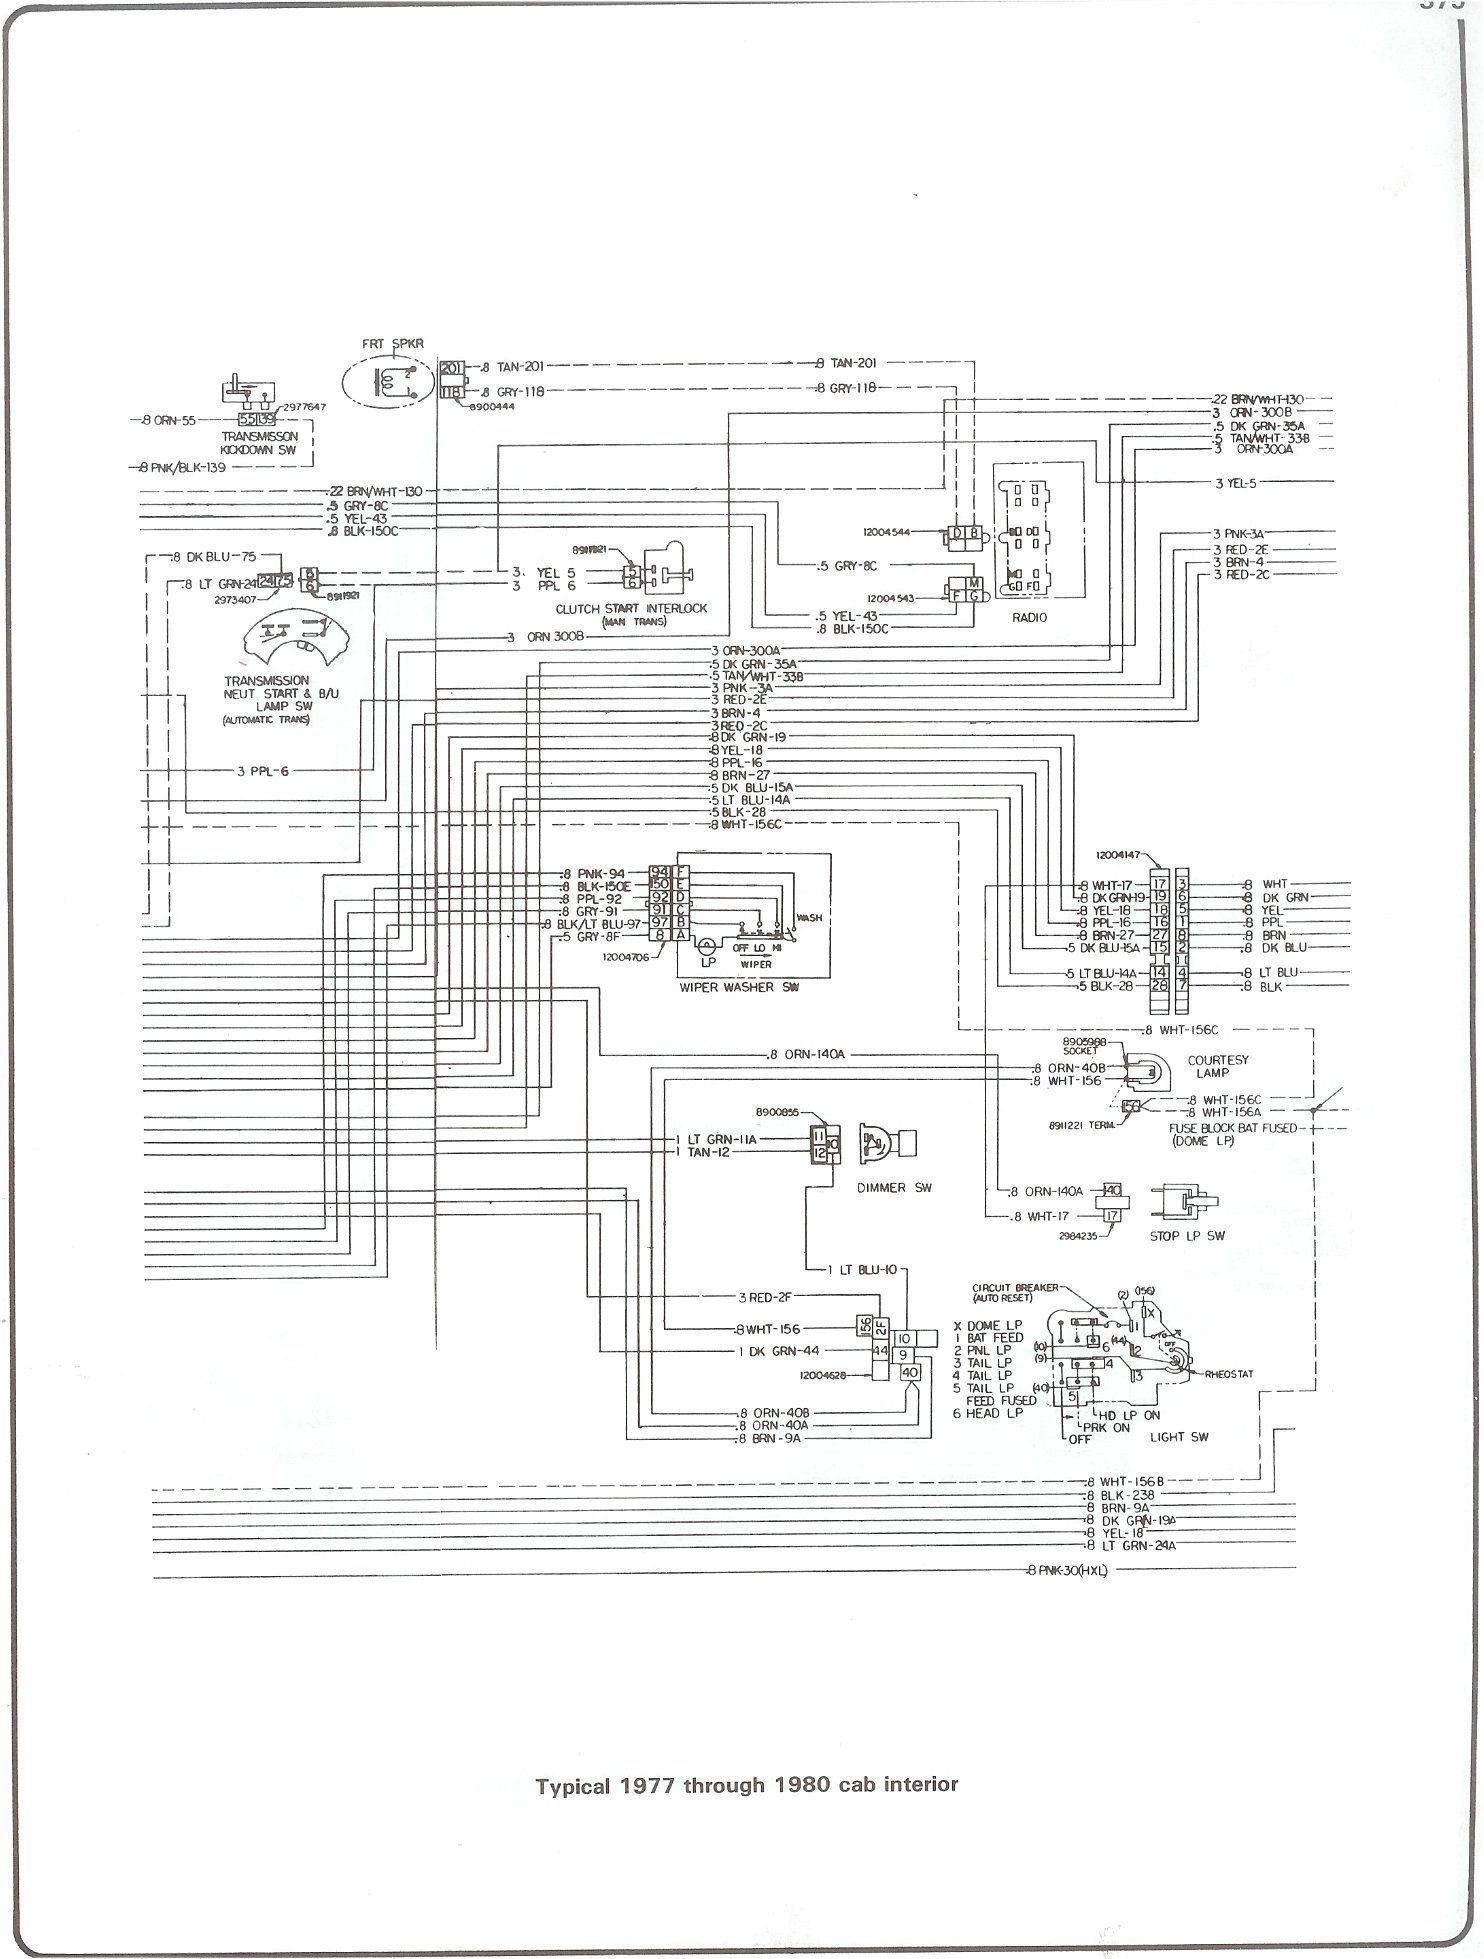 77 80_cab_inter complete 73 87 wiring diagrams 1976 chevy truck wire harness at webbmarketing.co